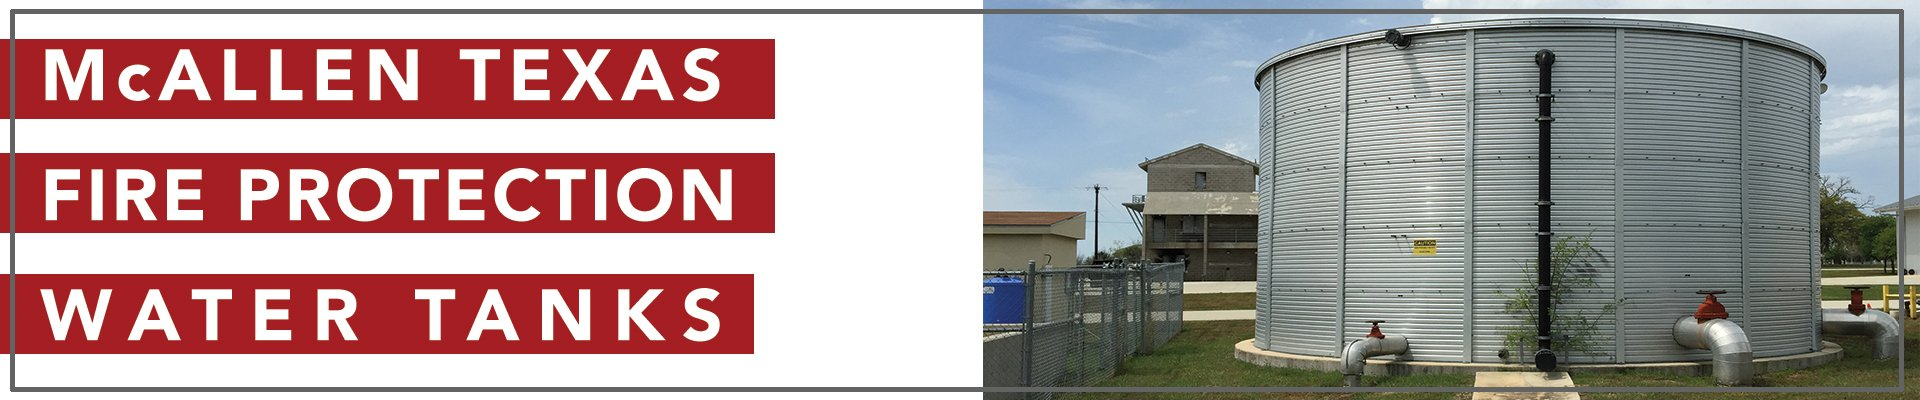 McAllen Texas fire protection water tanks